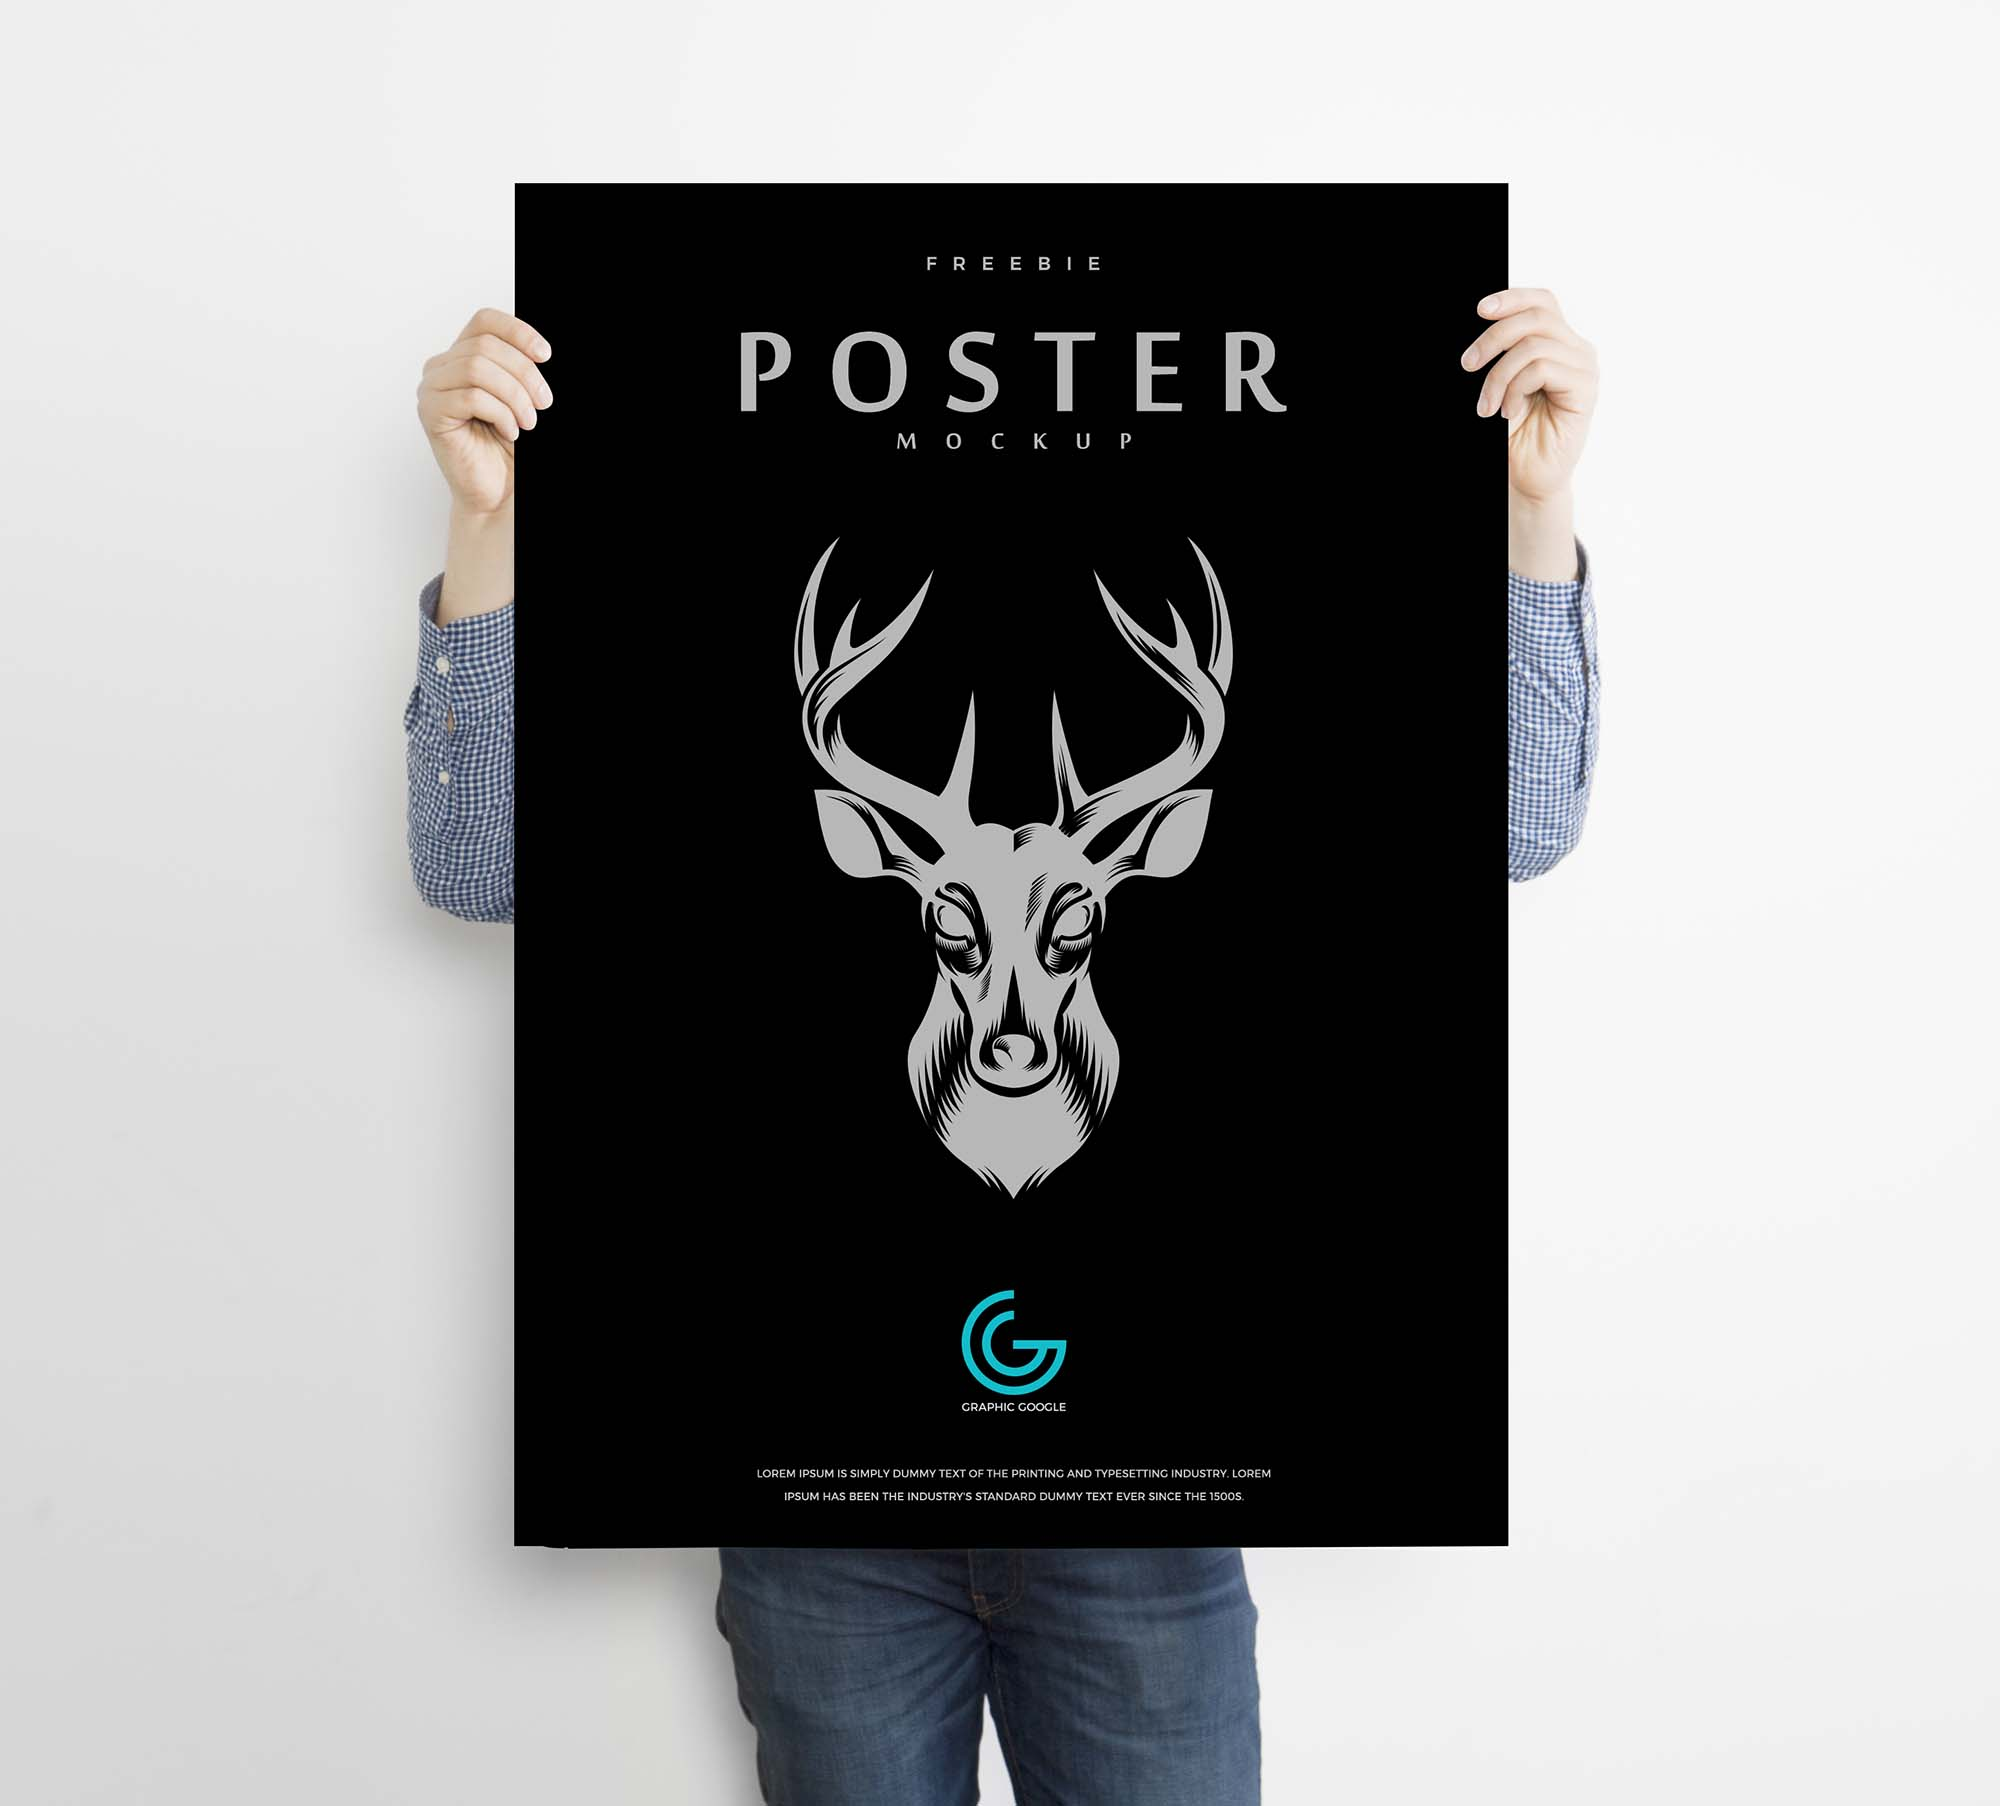 Poster Mockup Held By a Man